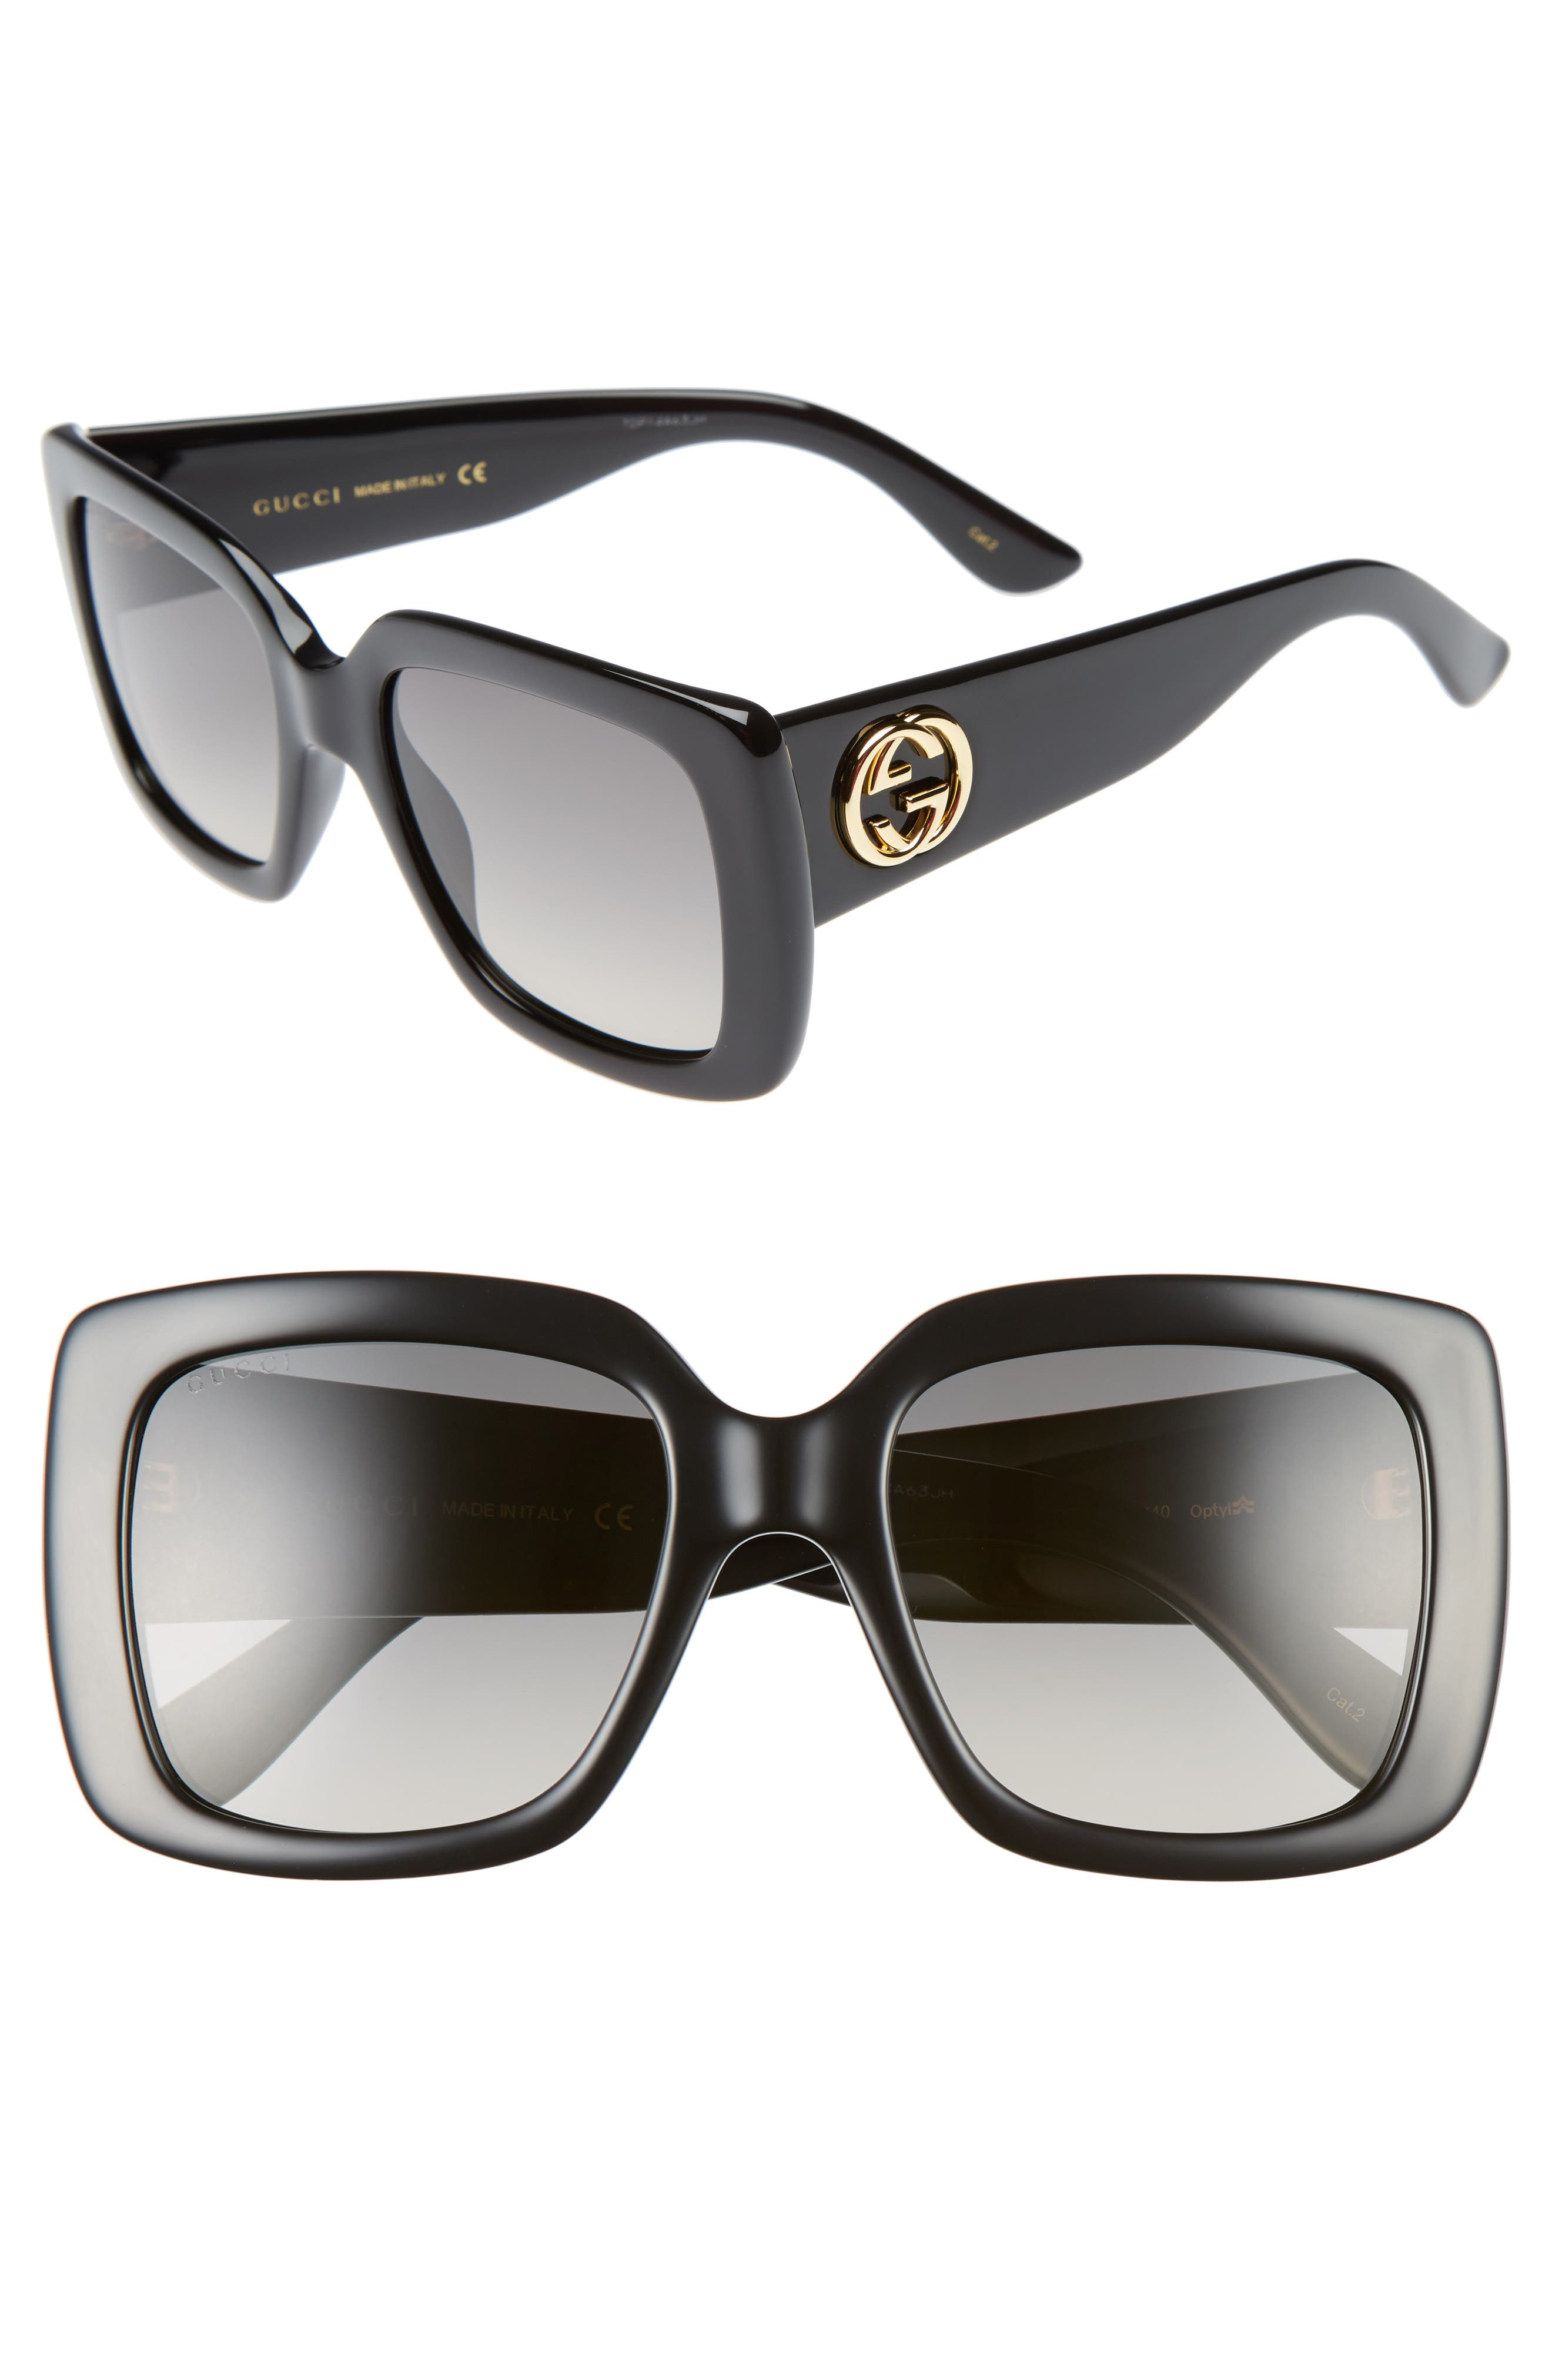 Gucci 53mm Square Sunglasses